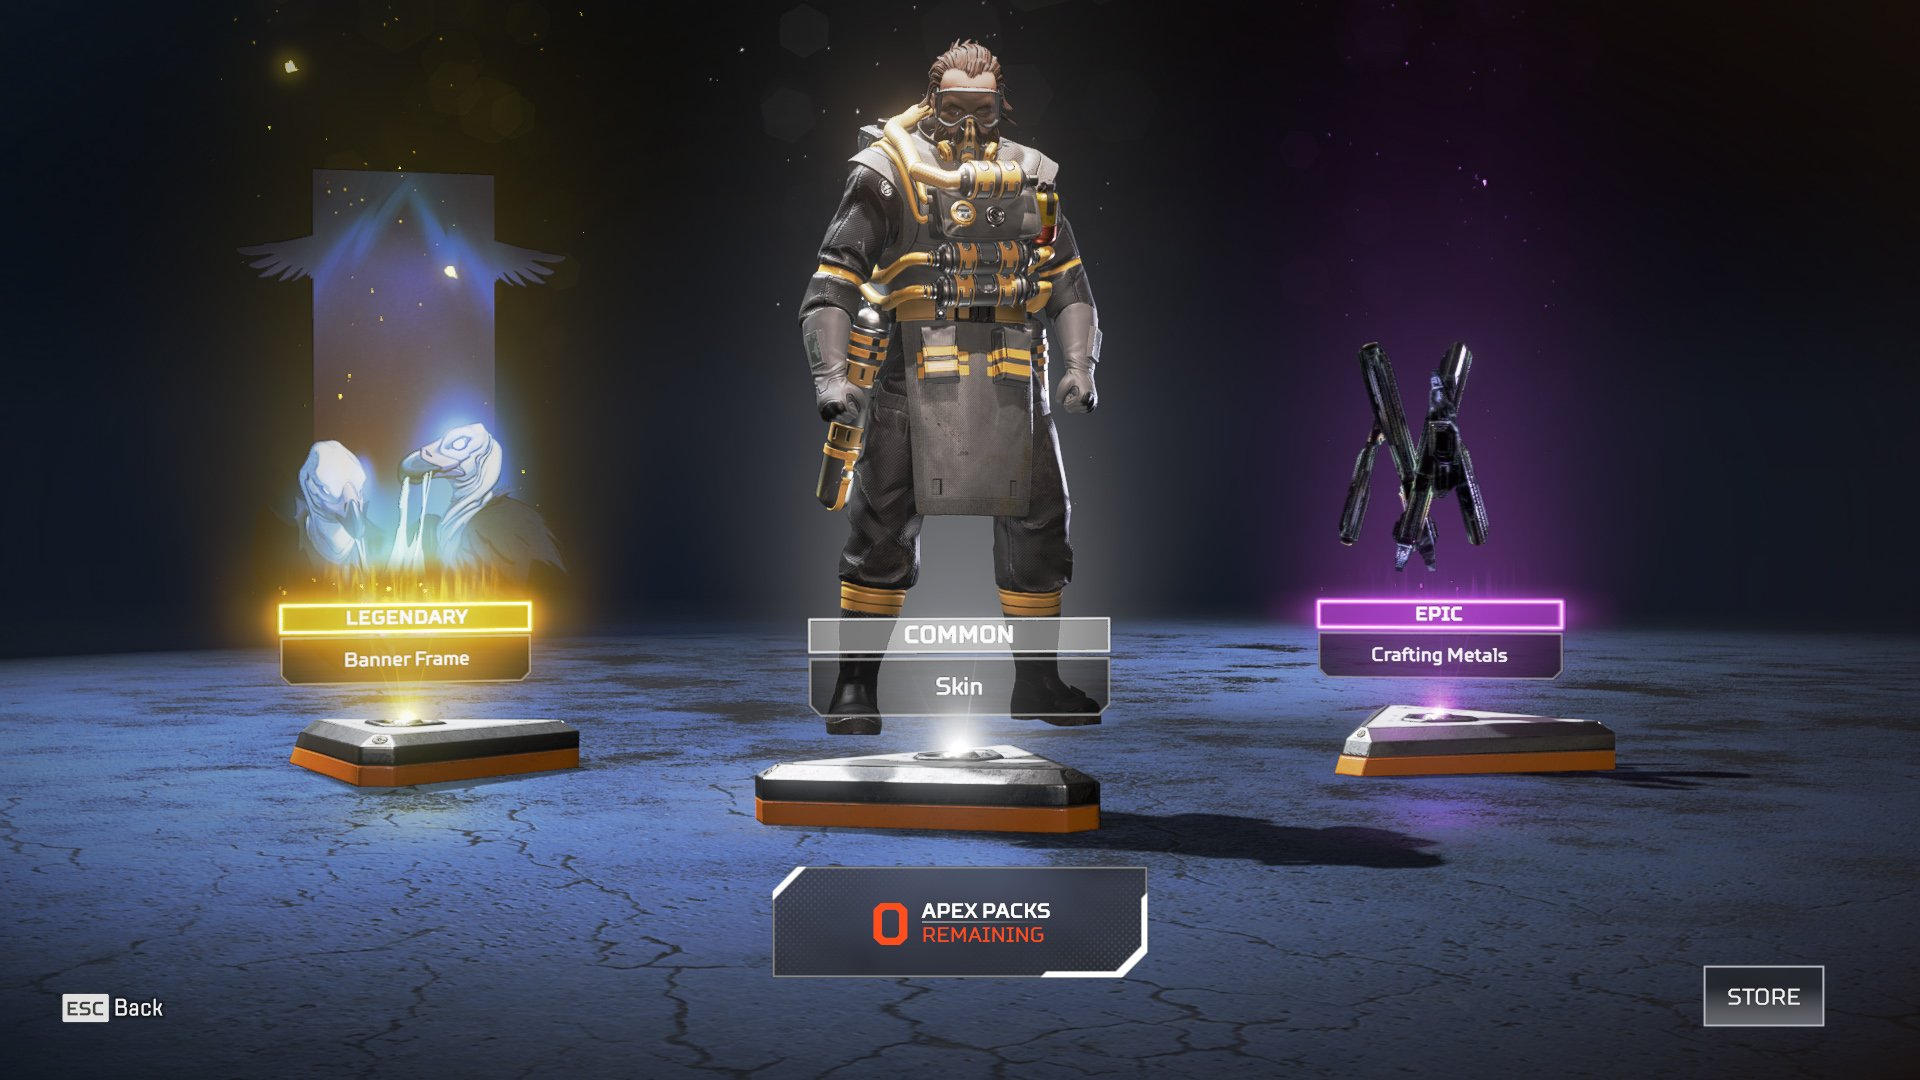 How to get crafting metals and materials in Apex Legends